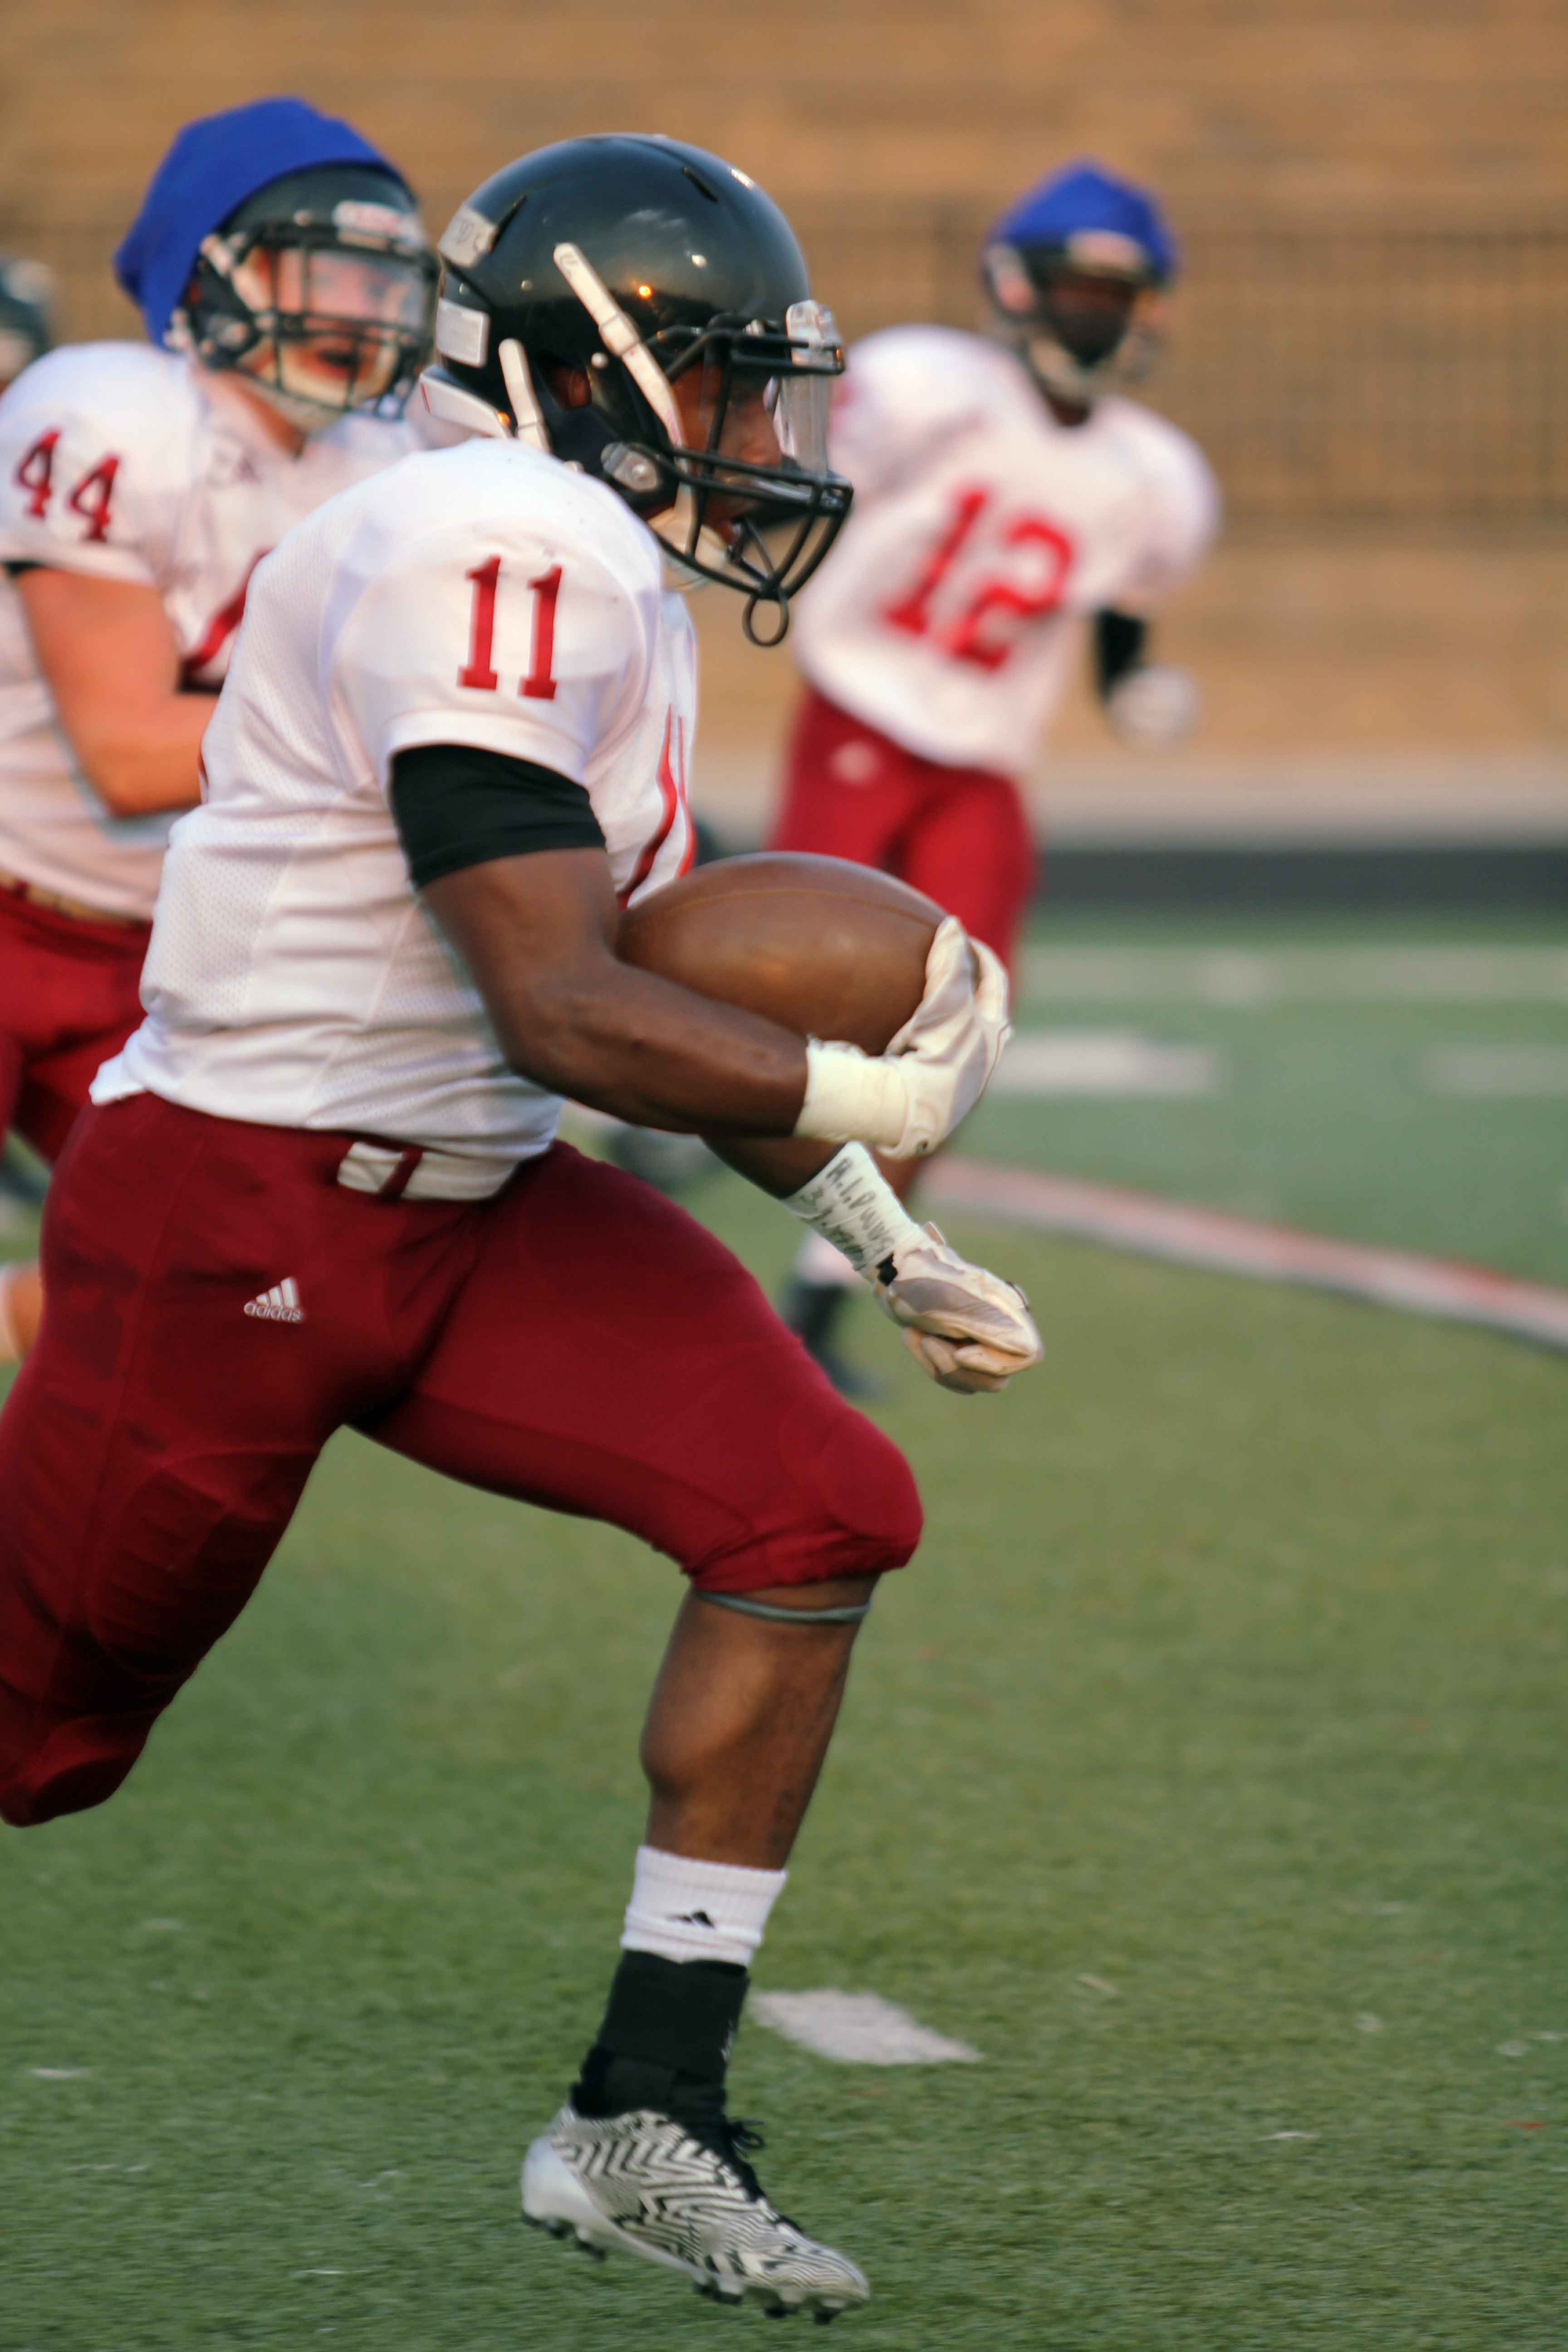 Senior JD Woods runs the ball at the Jamboree. Woods recently broke the school record for career rushing yards in a game at Olathe Northwest.